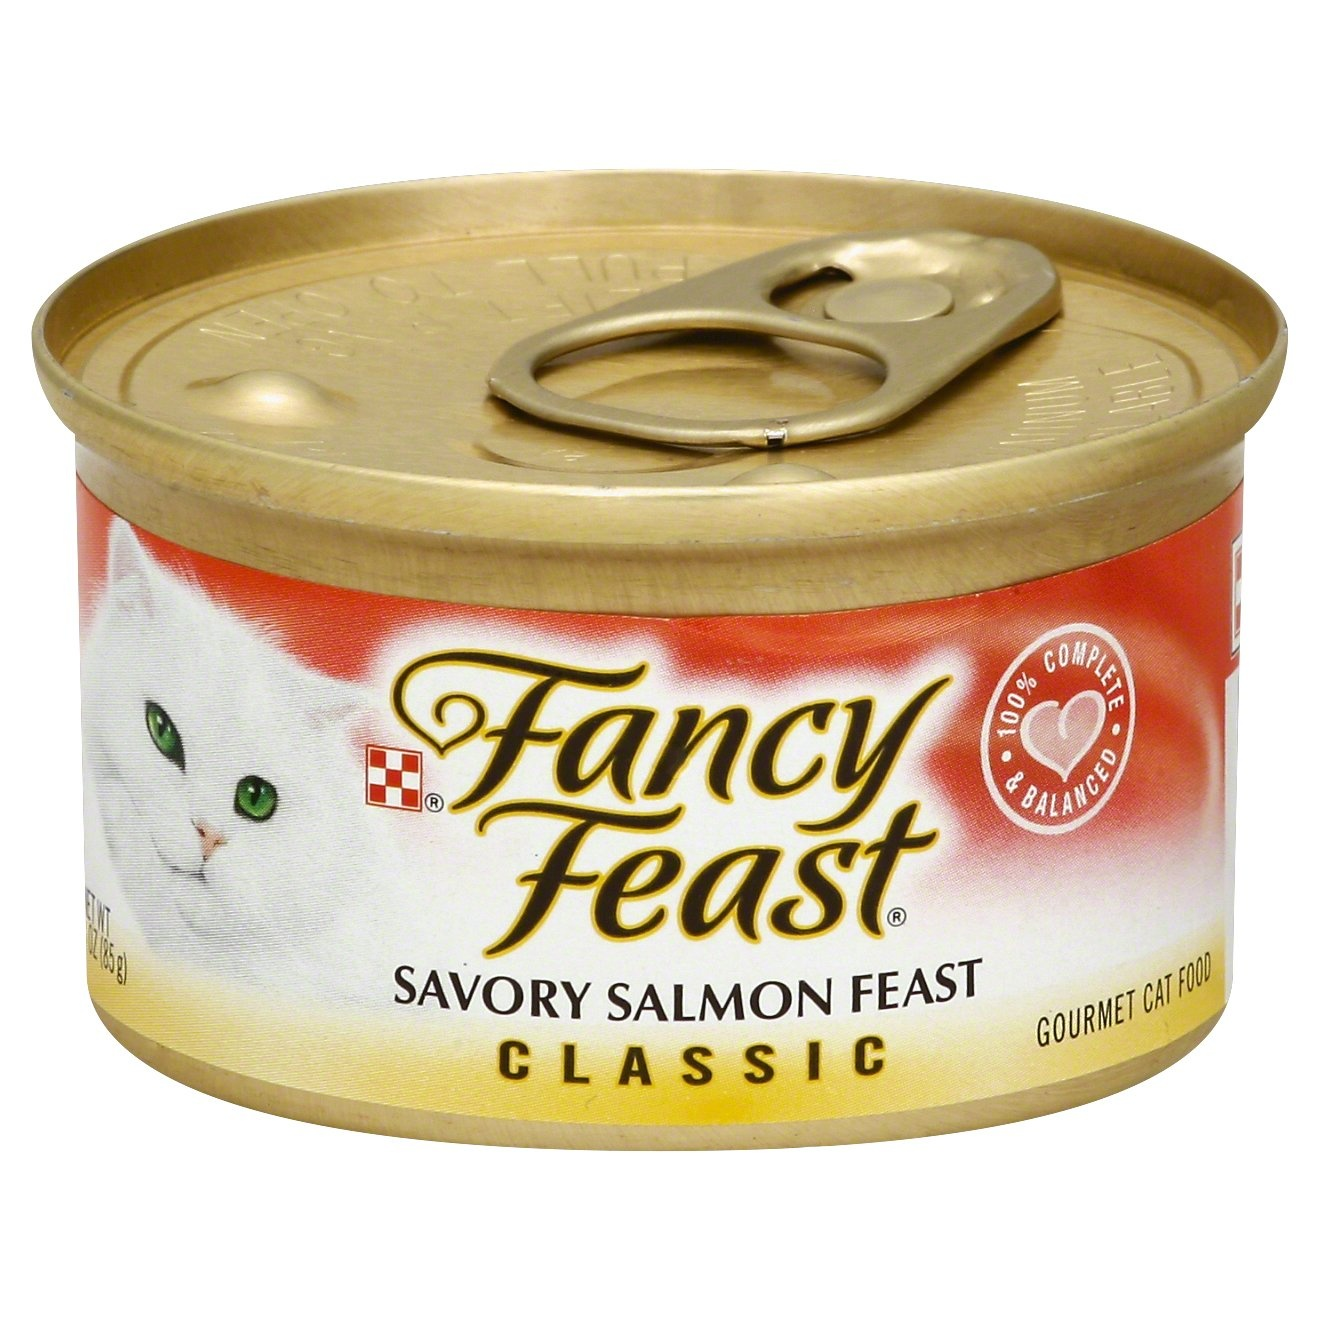 slide 1 of 7, Purina Fancy Feast Classic Savory Salmon Feast Cat Food,